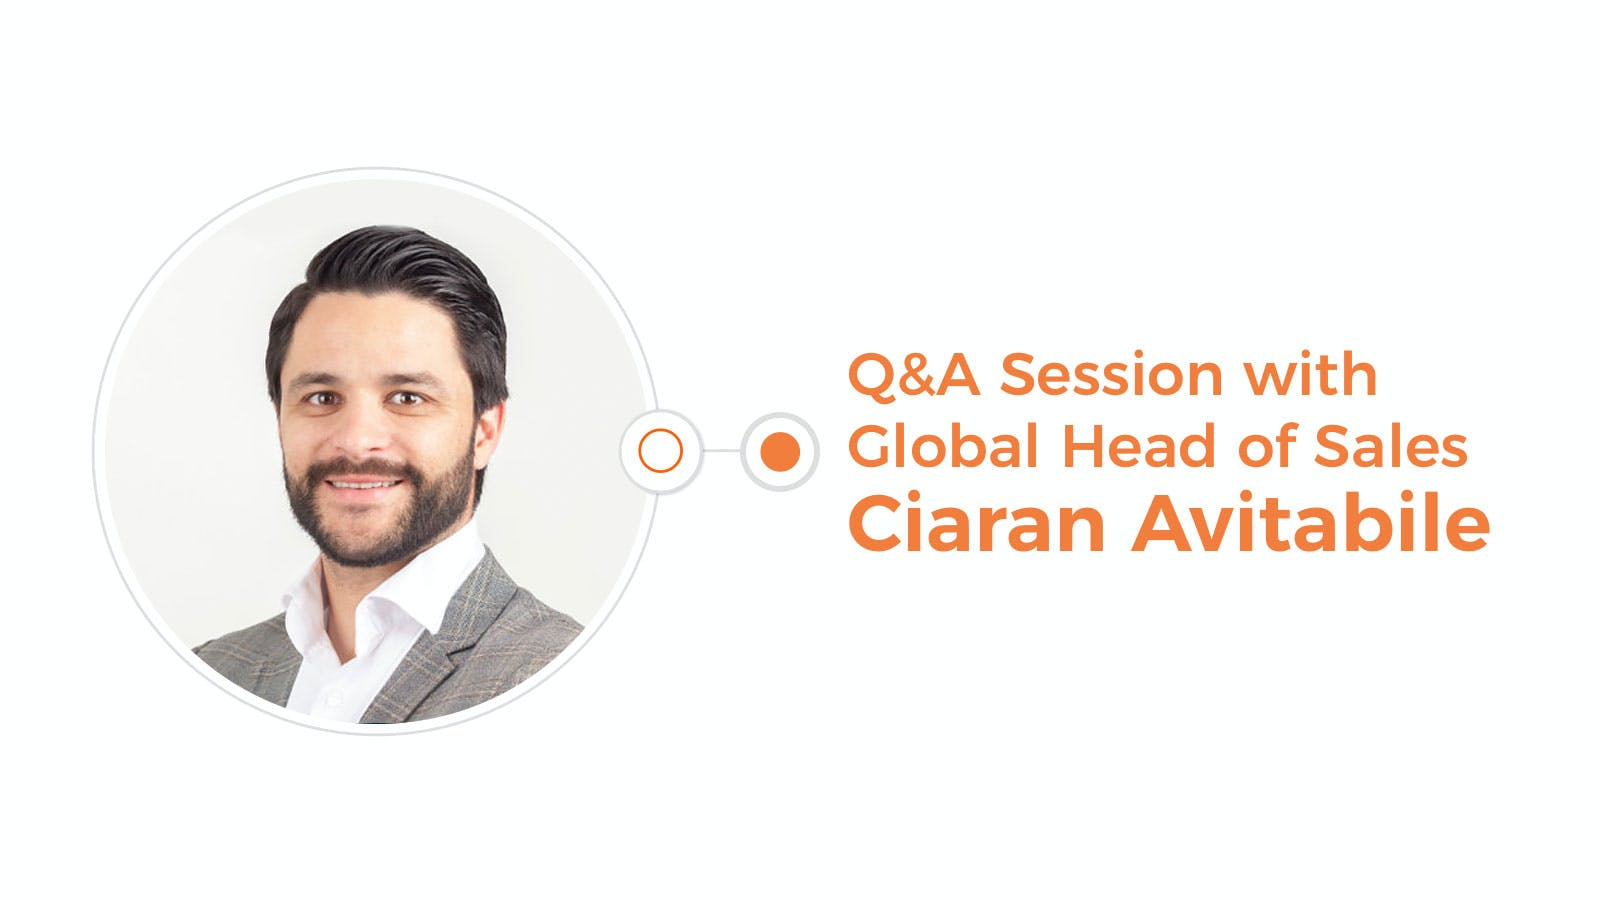 Q&A Session with Global Head of Sales Ciaran Avitabile